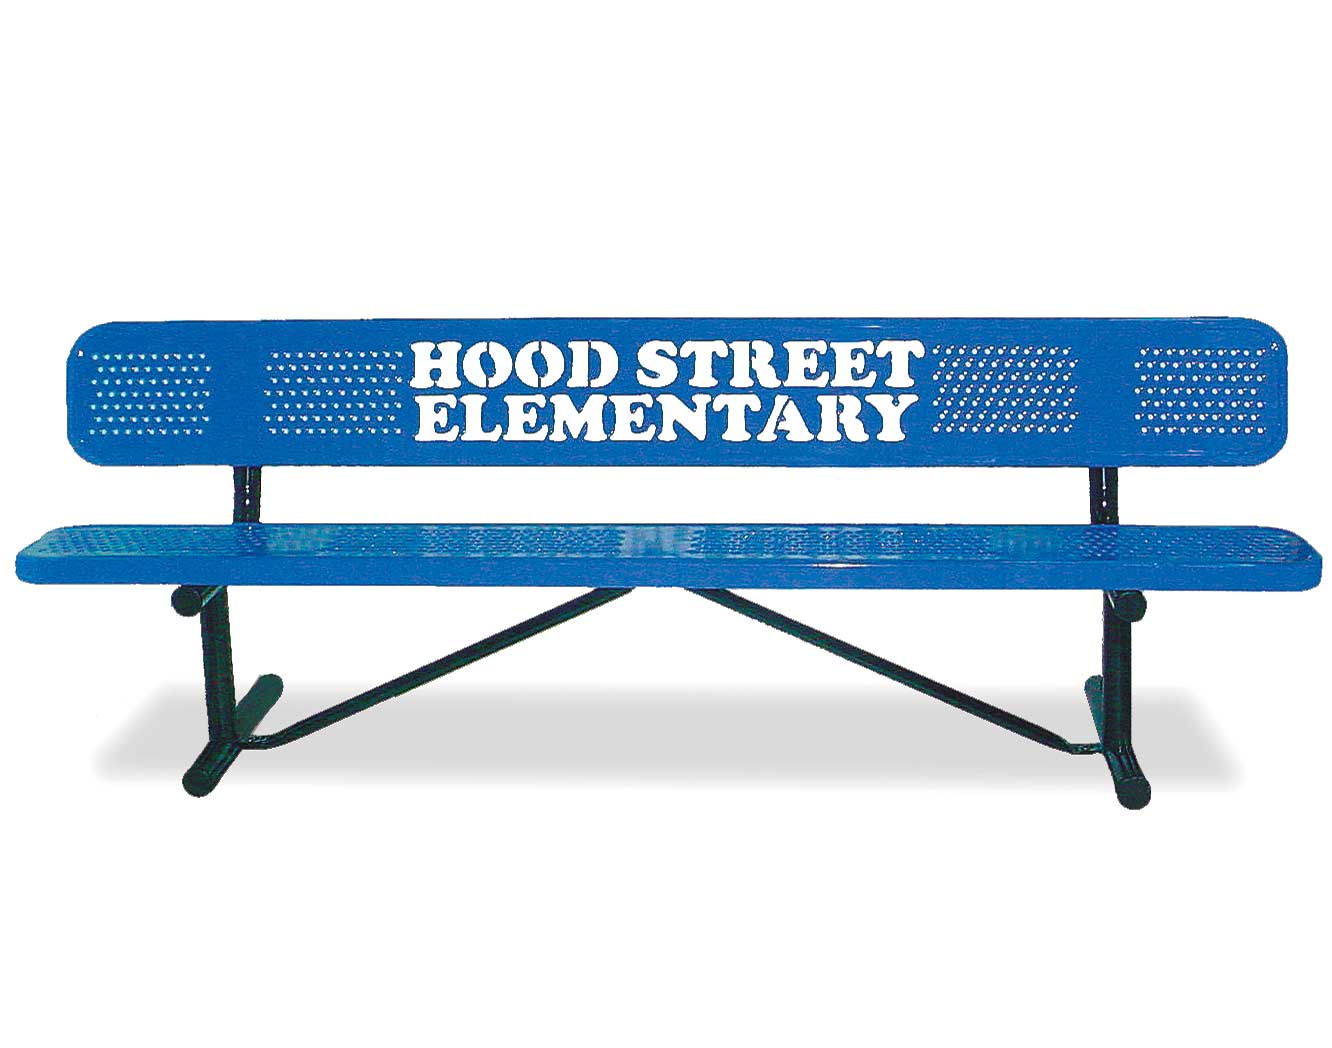 Personalized Perforated Metal Standard Garden Bench